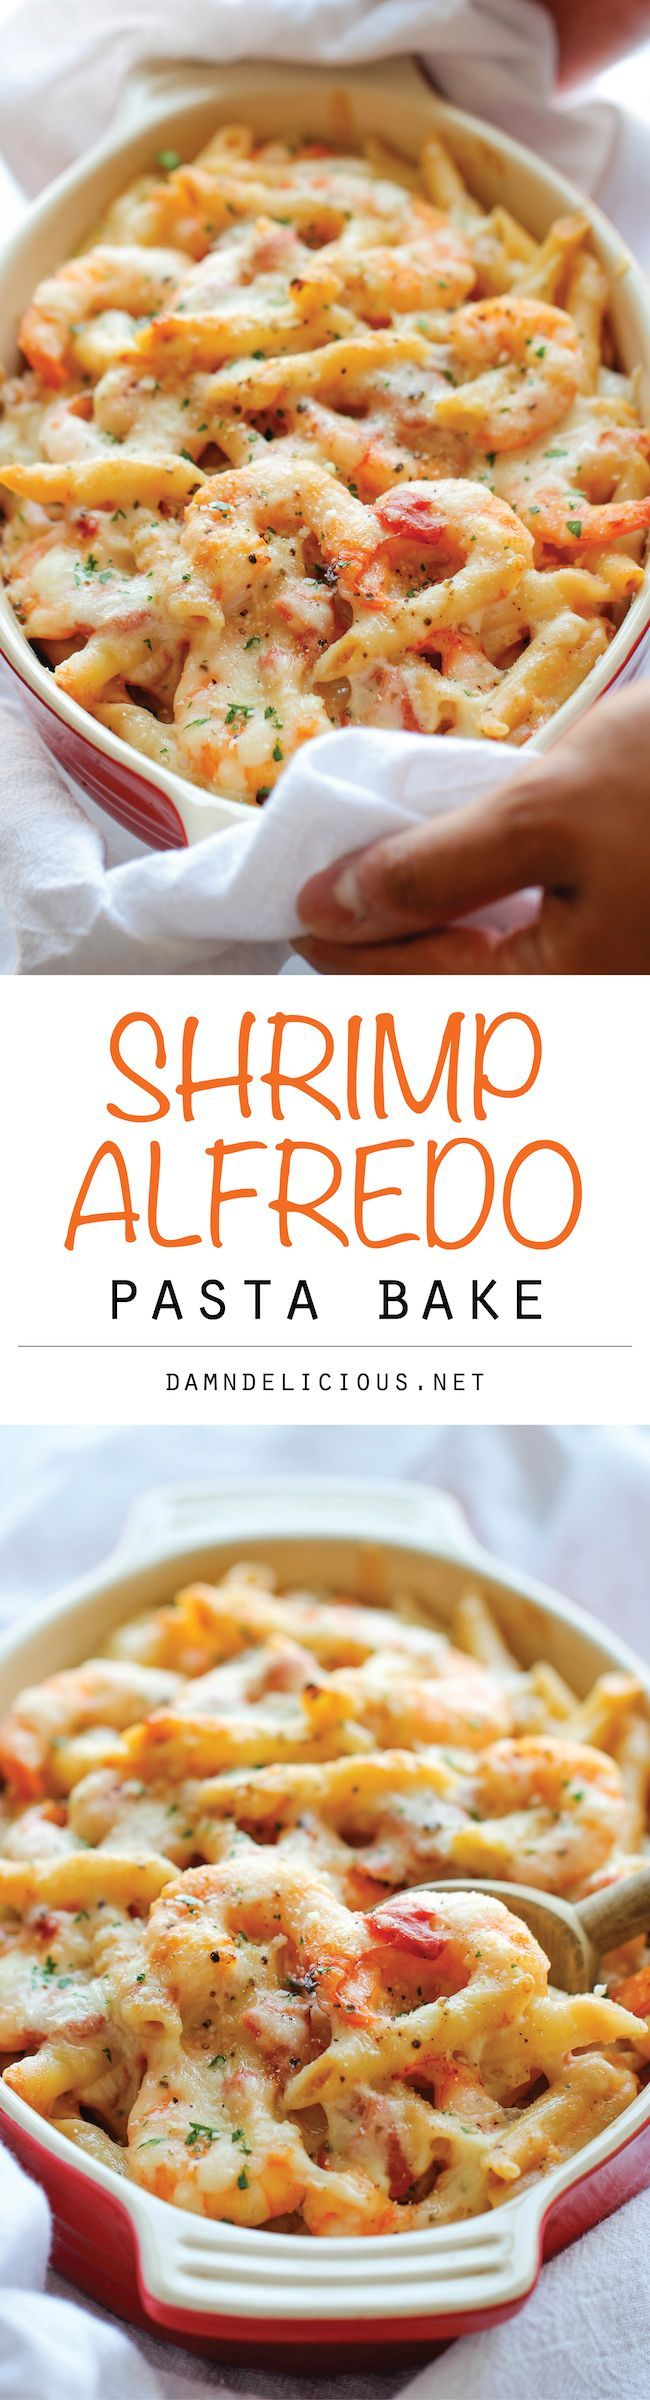 Skinny Shrimp Alfredo Pasta Bake - An unbelievably cheesy, creamy lightened-up pasta bake that you can easily make ahead of time! @damndelicious